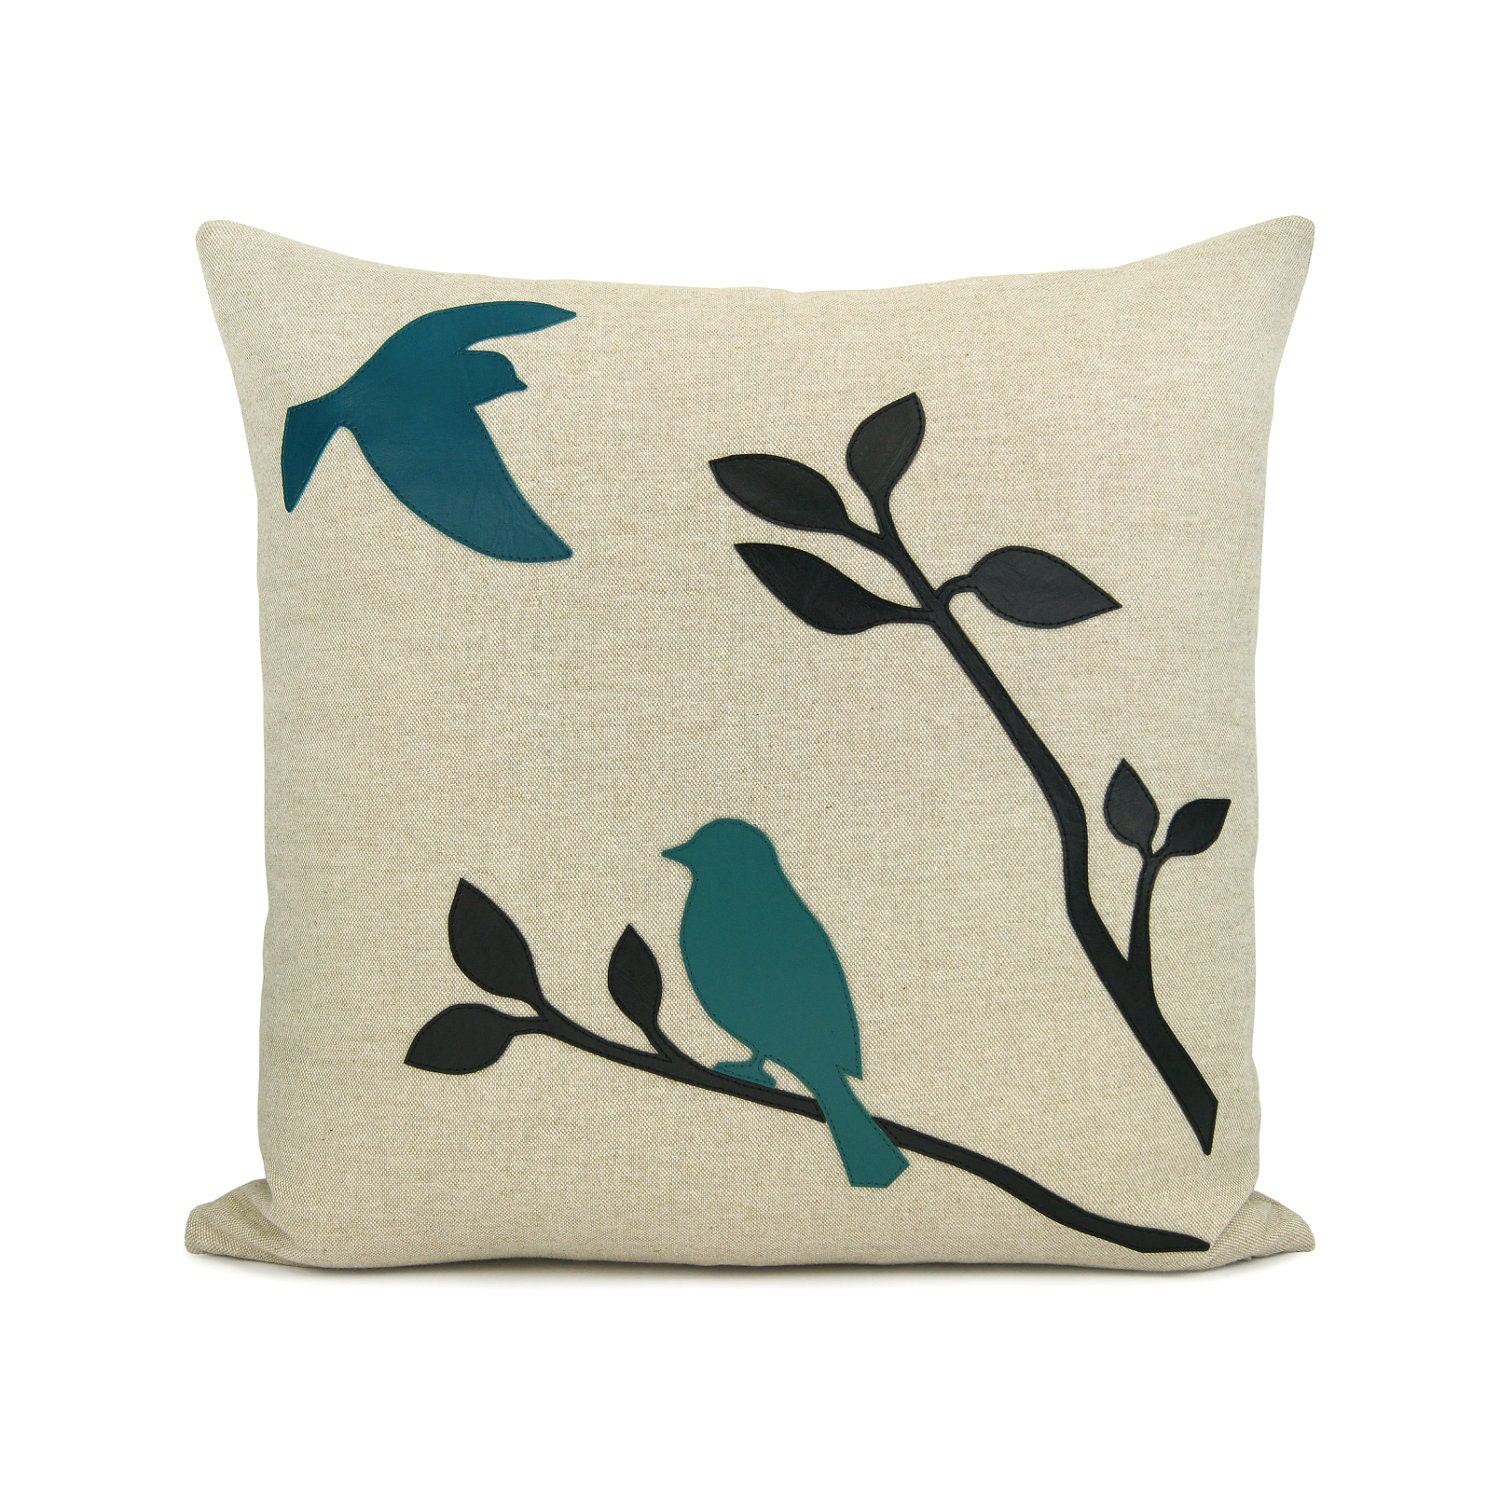 Throw Pillows With Birds : Item Details